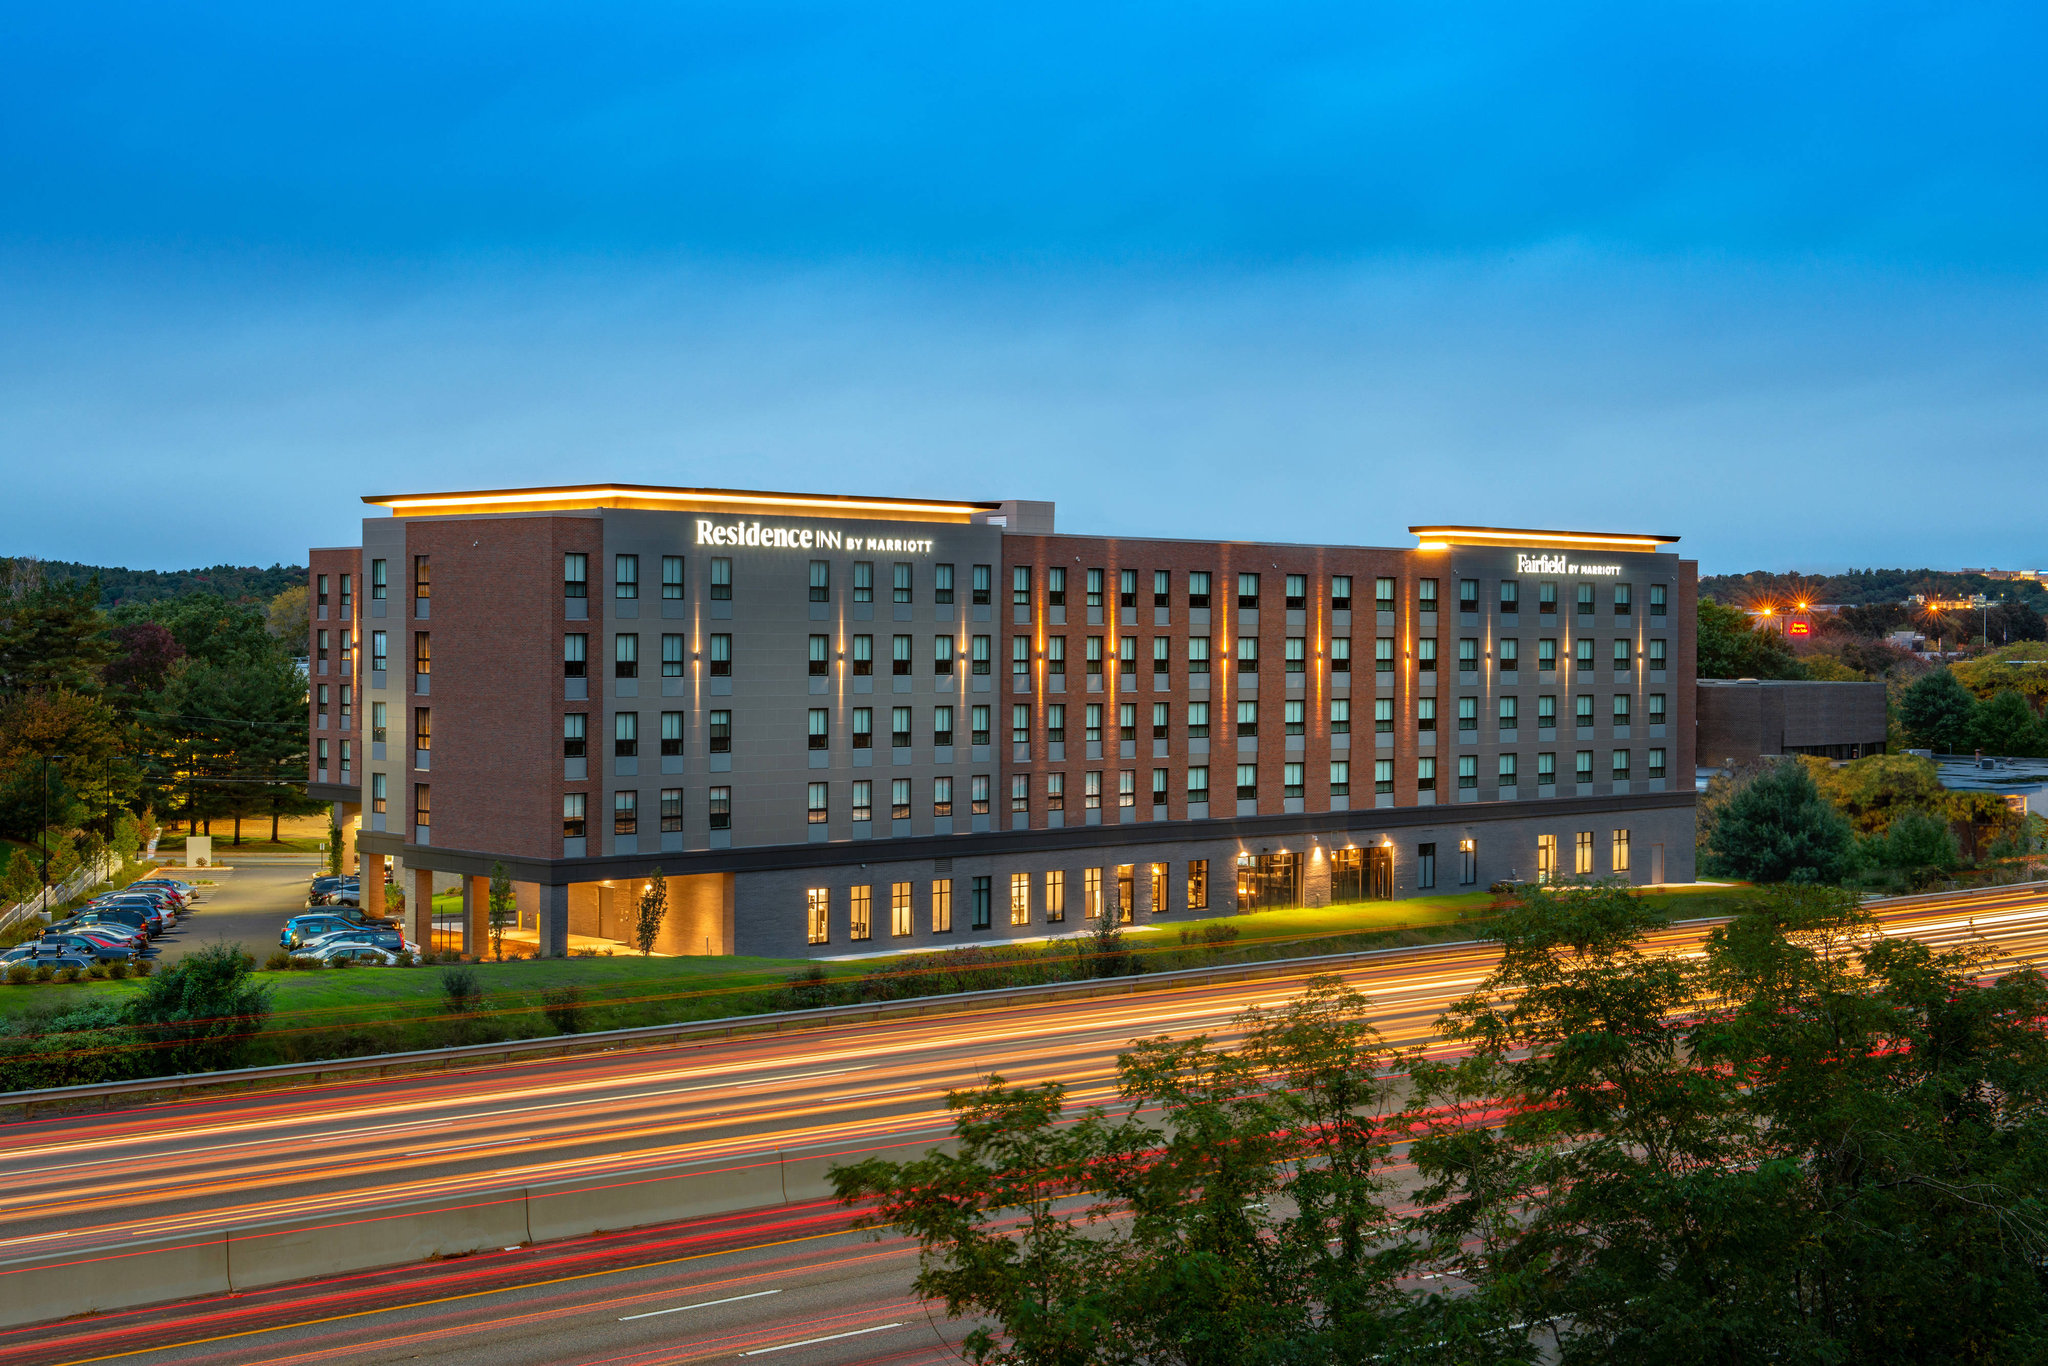 Residence Inn by Marriott Waltham